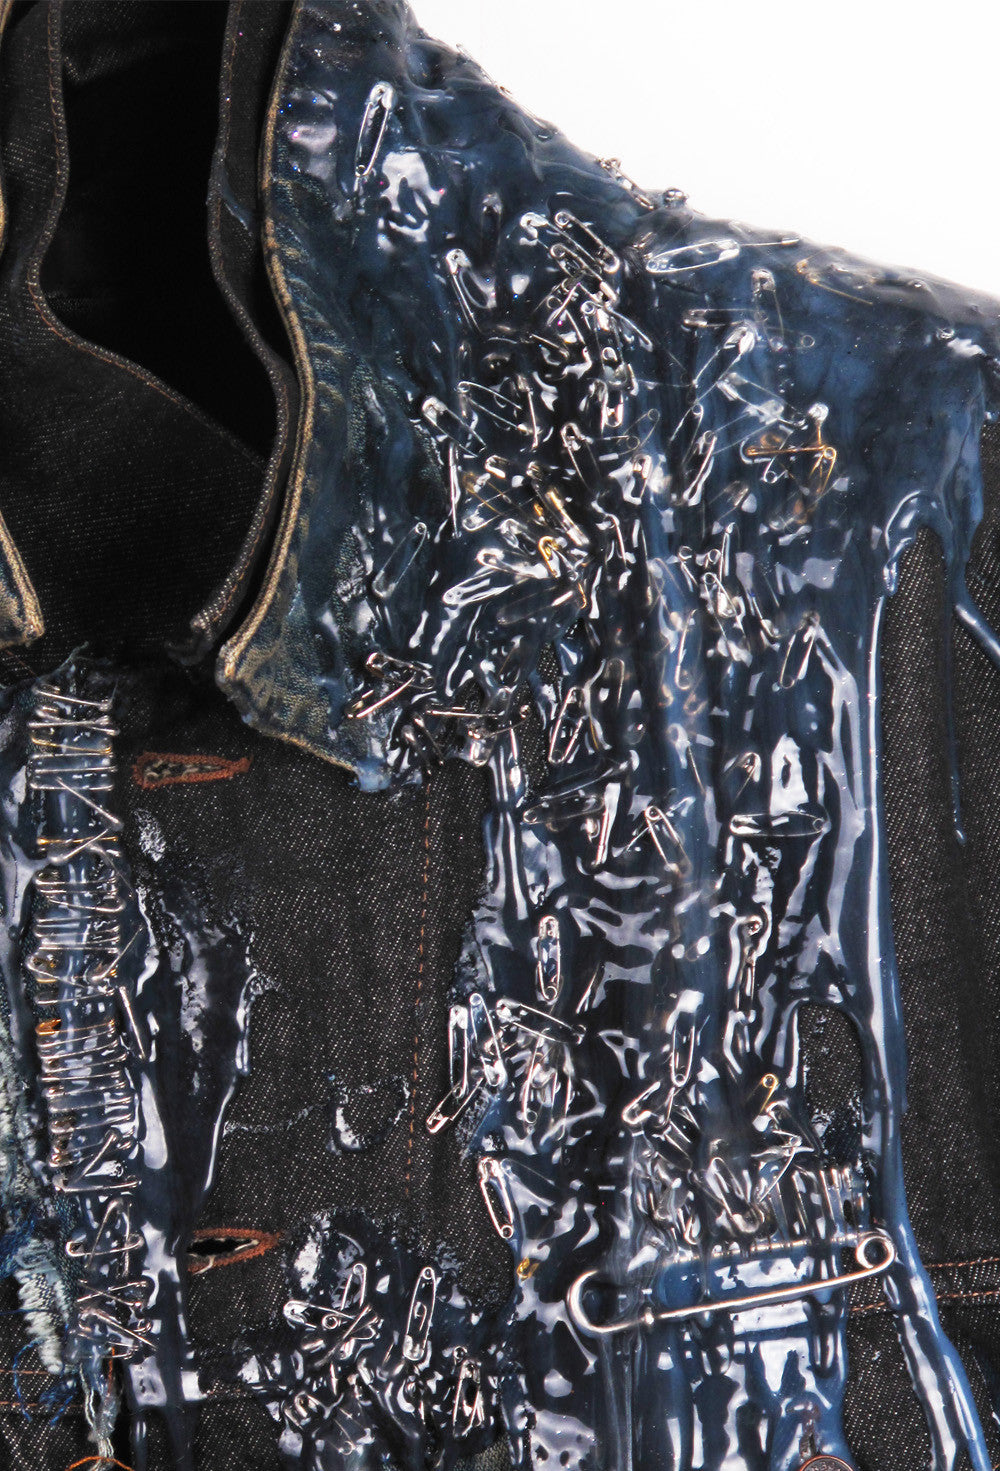 SSIK ONE OF A KIND Silicon Drip Oversized Denim Jacket - AVAILABLE FOR  IMMEDIATE DELIVERY MENS SIZE L/XL